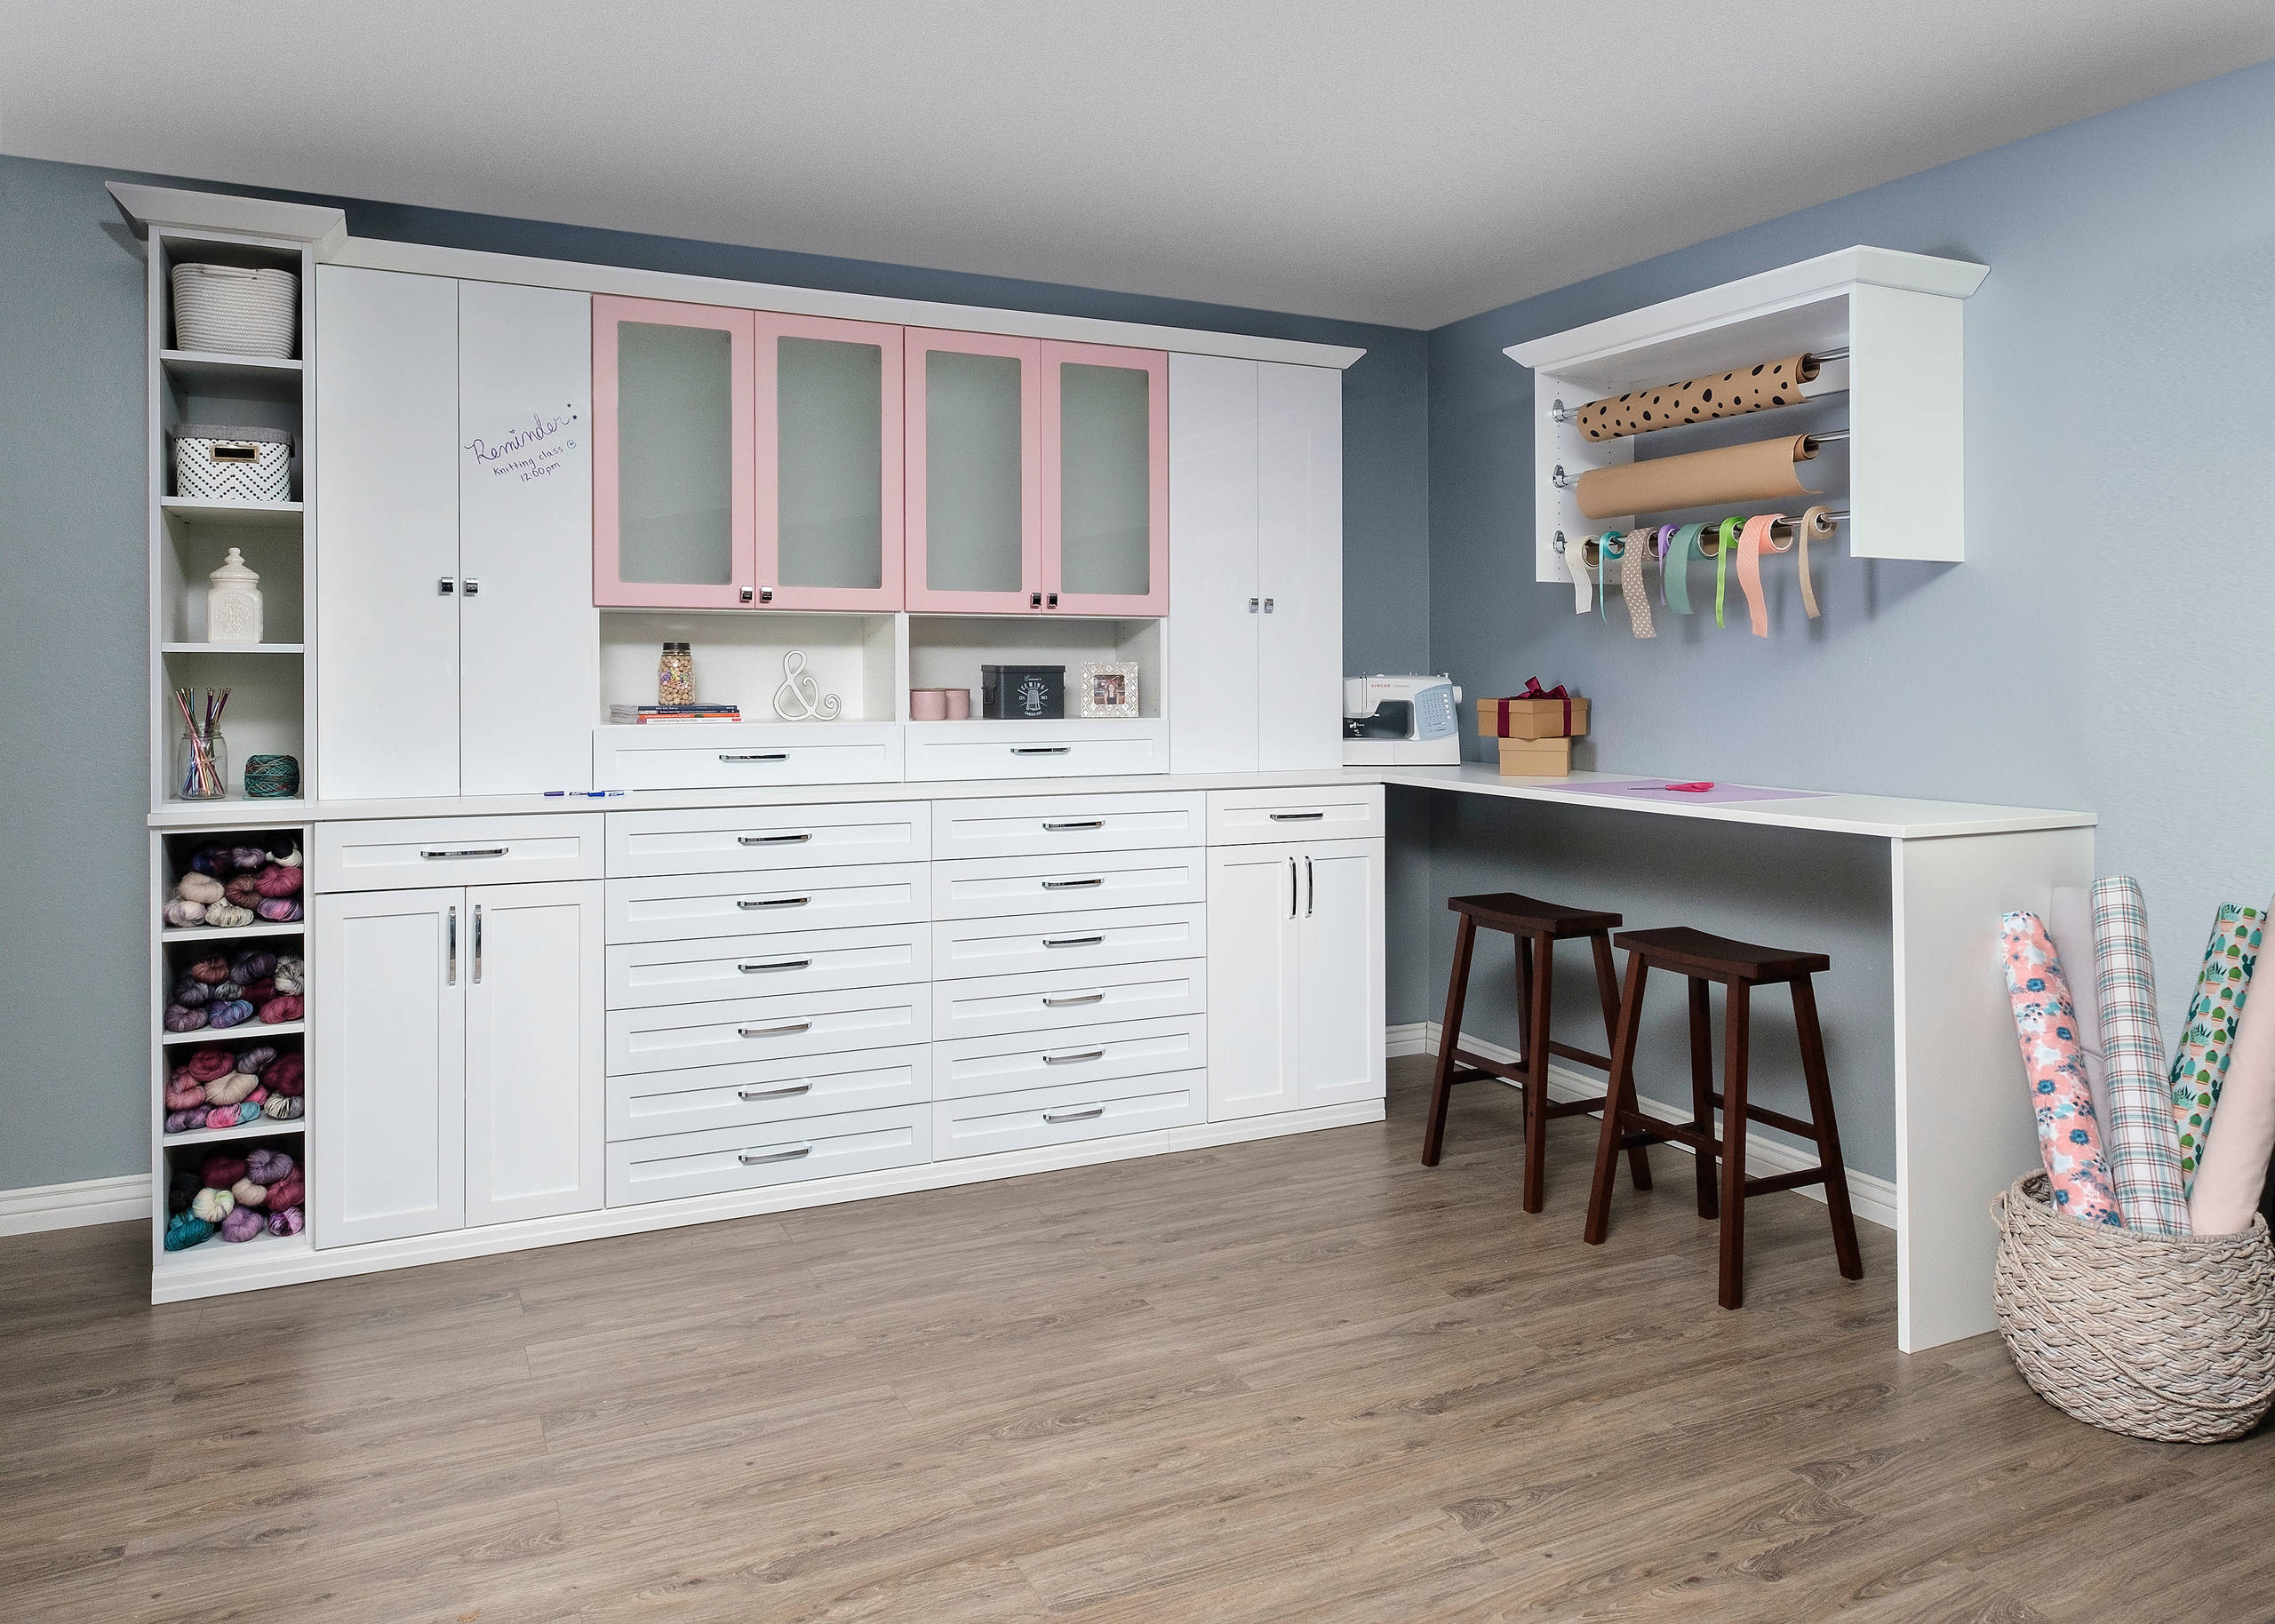 75 Beautiful Modern Craft Room Pictures Ideas September 2020 Houzz